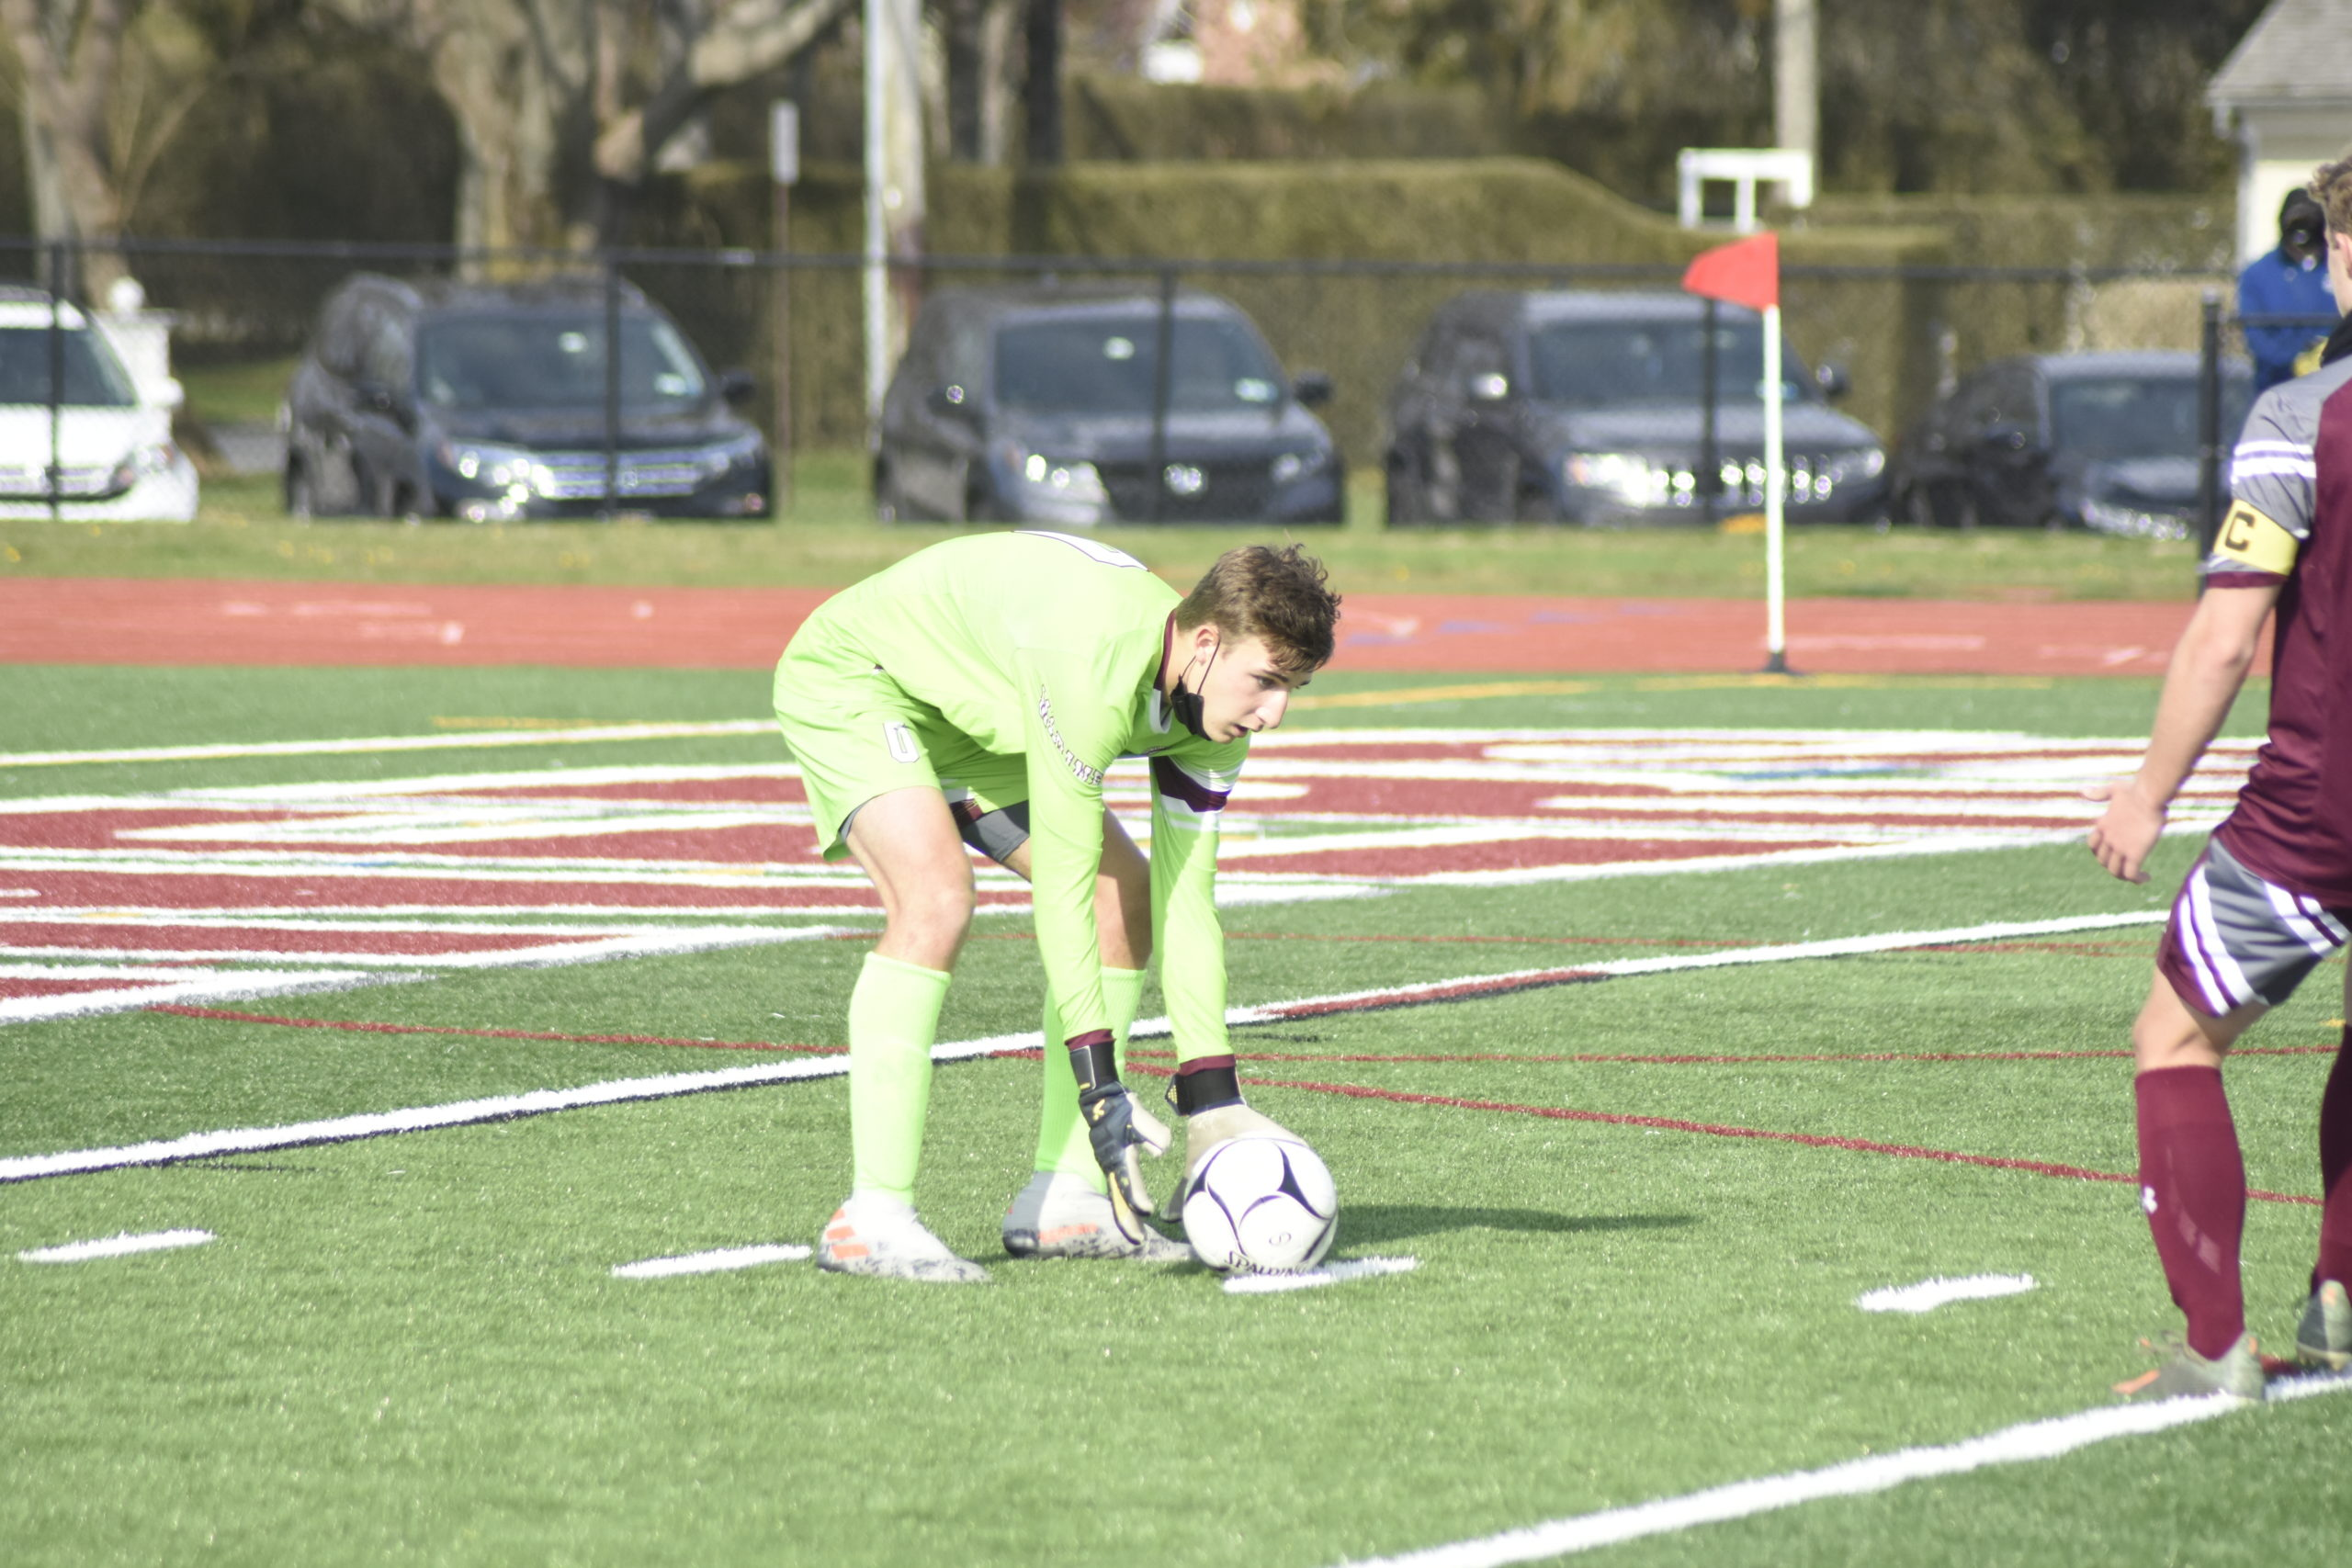 Southampton sophomore goalie Andrew Panza plays a ball that comes into the box.